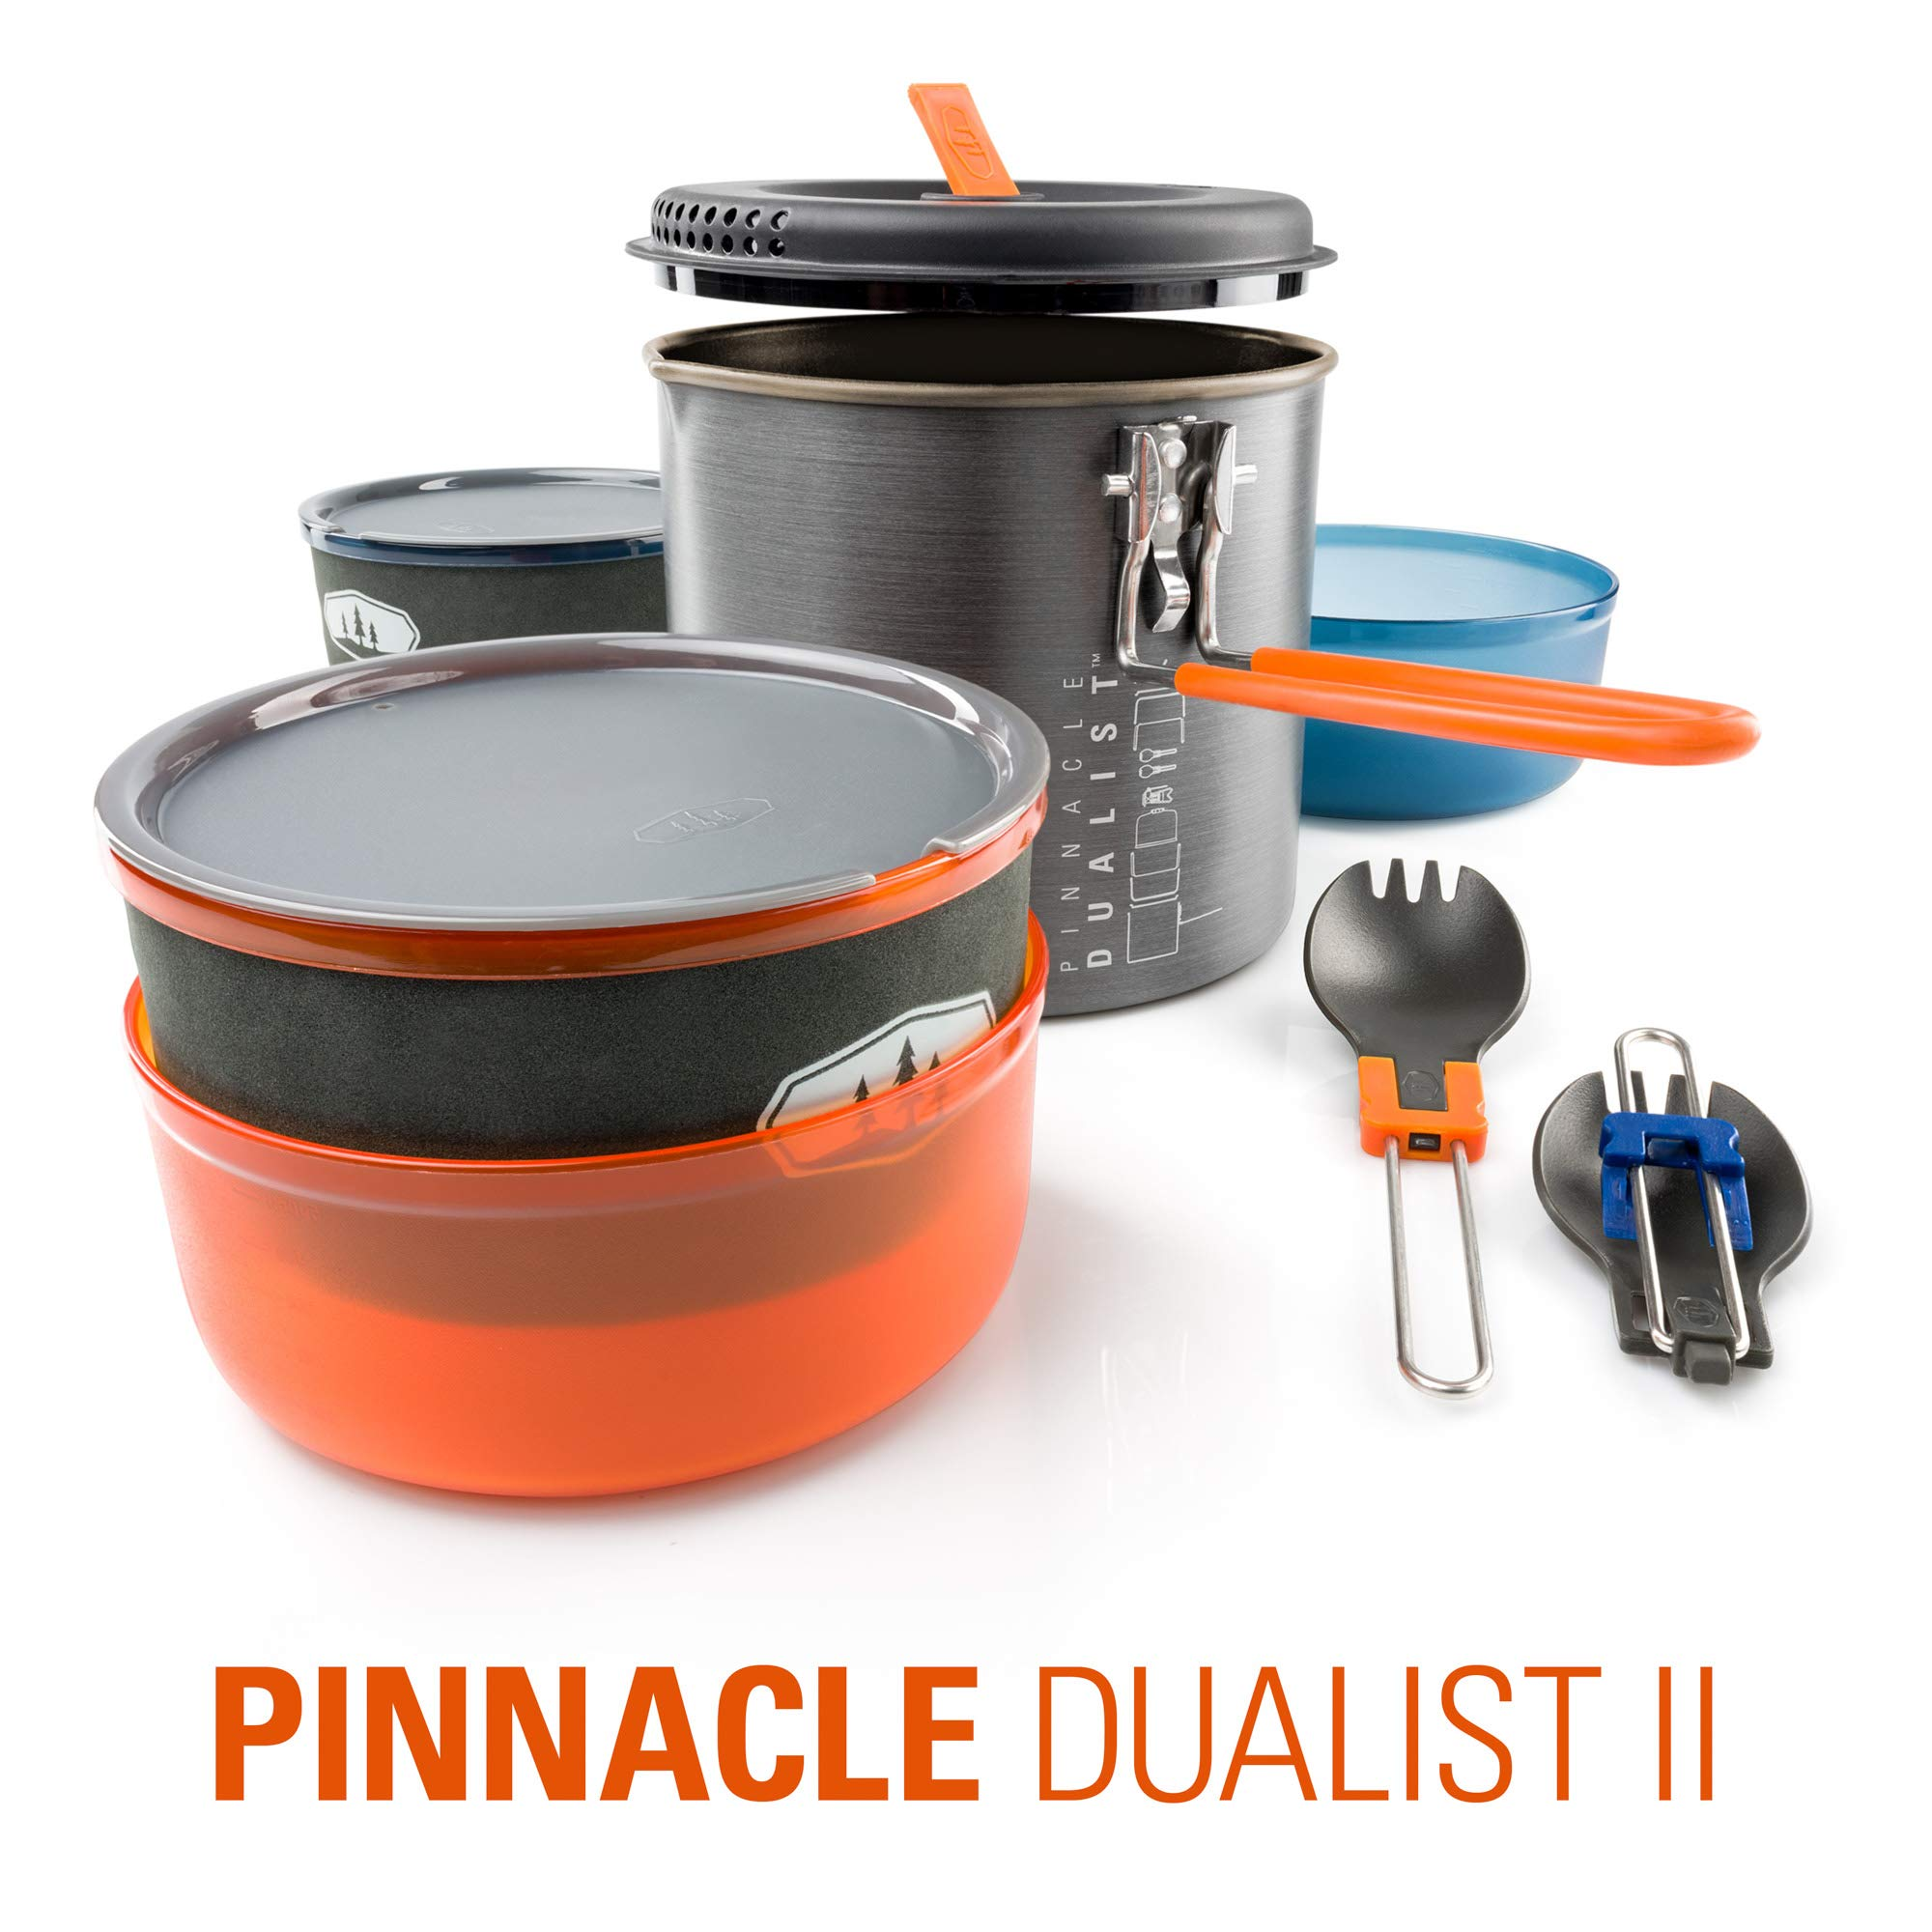 GSI Outdoors - Pinnacle Dualist II, Camping Cook Set, Superior Backcountry Cookware Since 1985 by GSI Outdoors